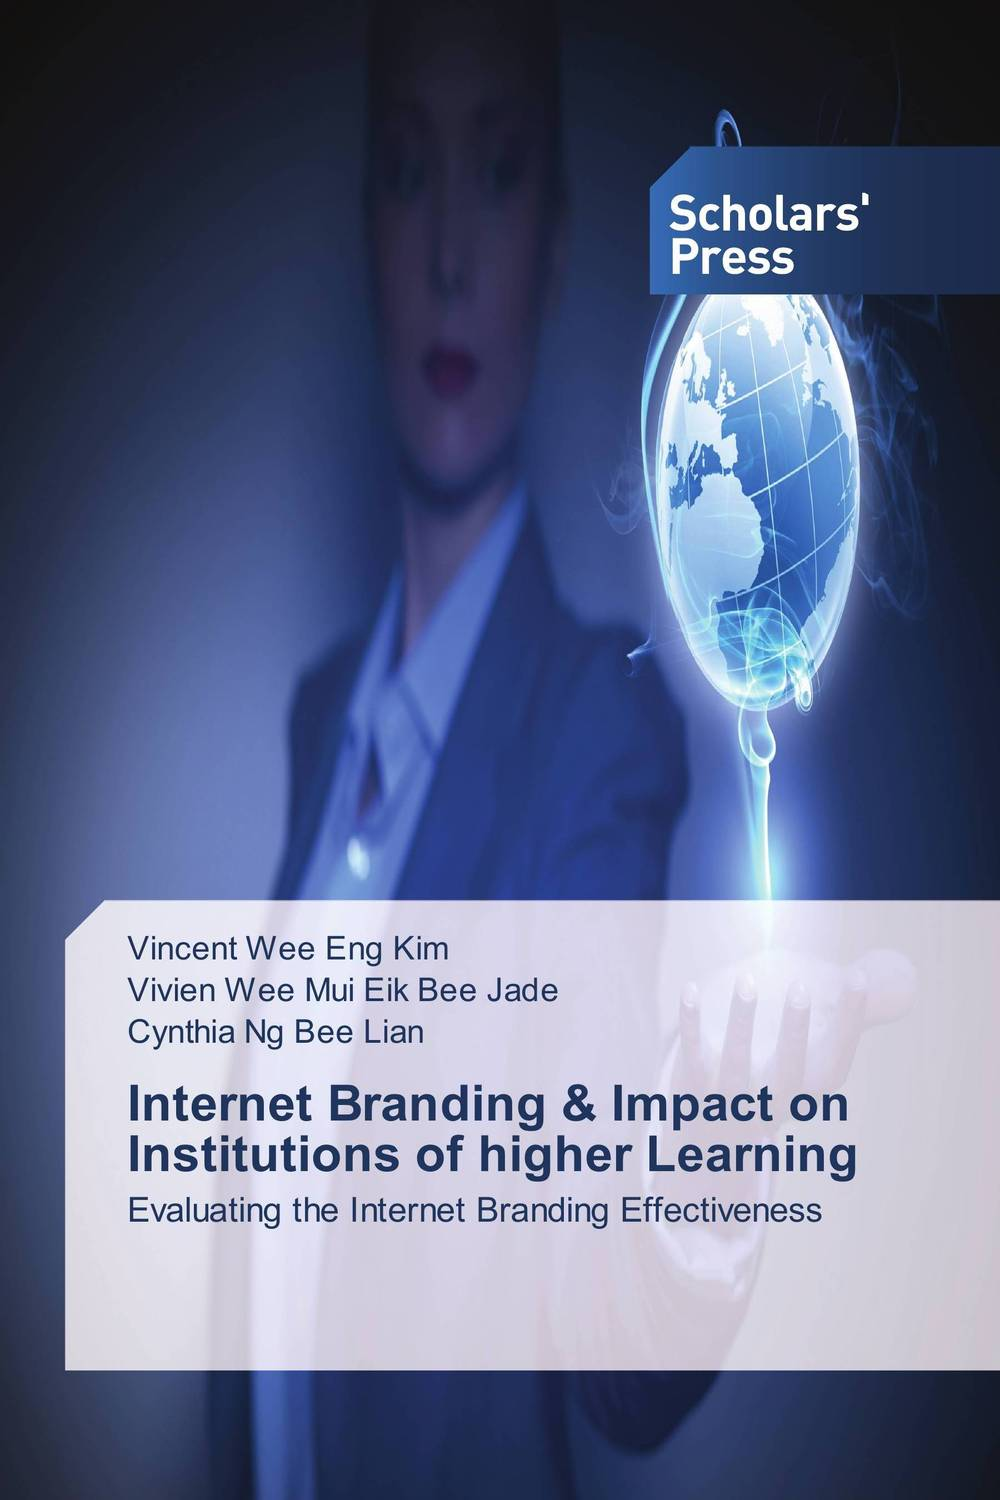 Internet Branding & Impact on Institutions of higher Learning internet as a potential tool for destination branding